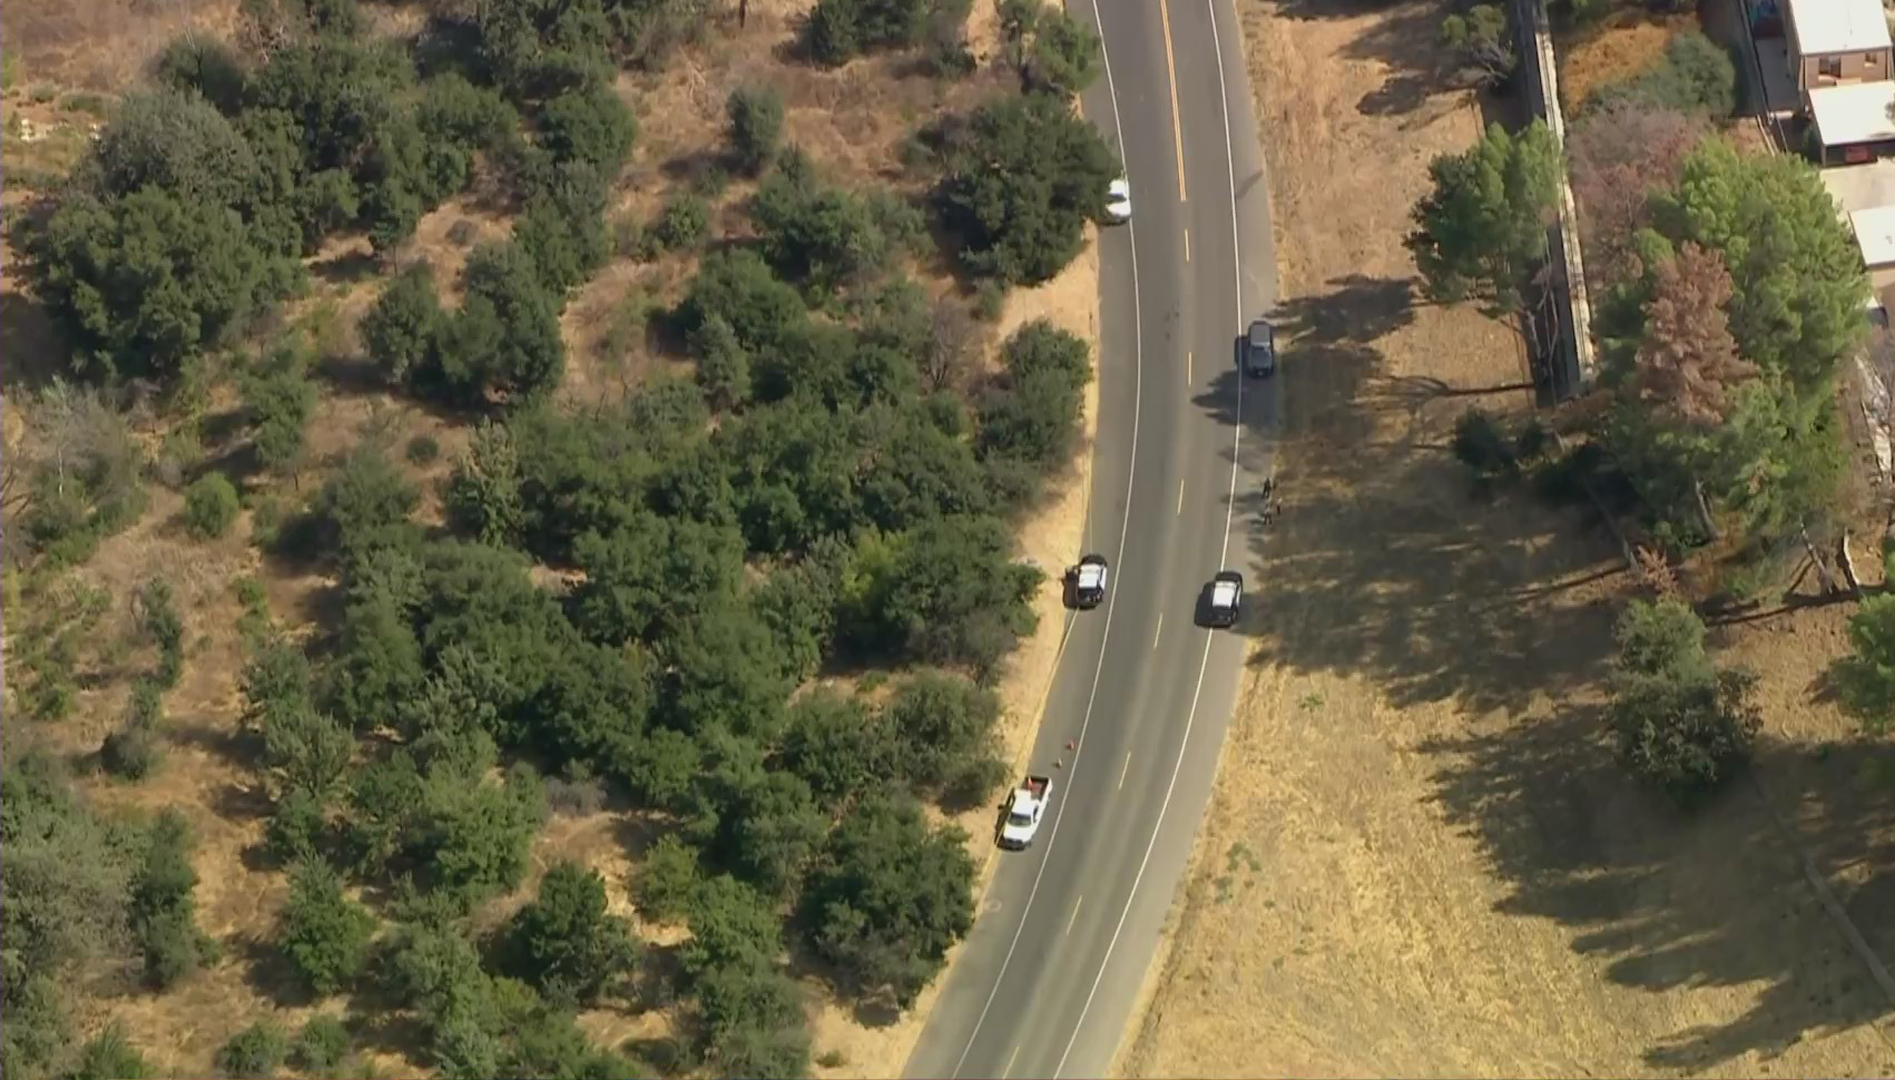 Los Angeles County Sheriff's Department patrol vehicles are seen near where a body was found in Agoura Hills on Sept. 24, 2020. (KTLA)